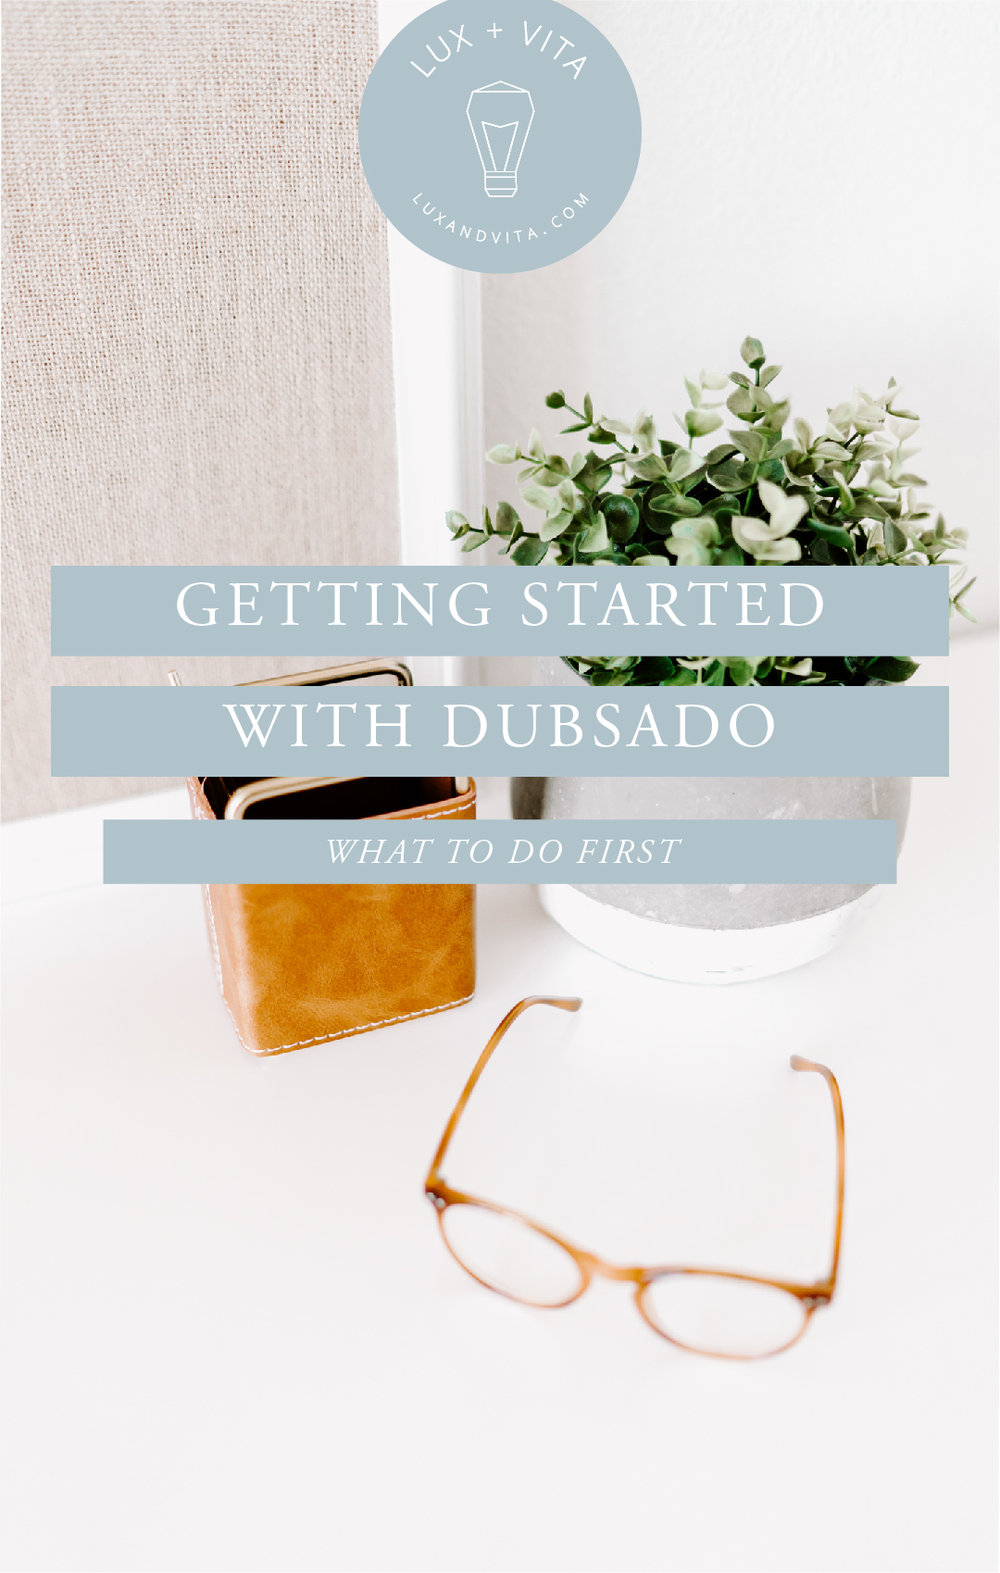 How to get started using Dubsado #startacrm #crm #dubsado #honeybook #17hats #tave #clientmanagement #howtousedubsado #usedubsado